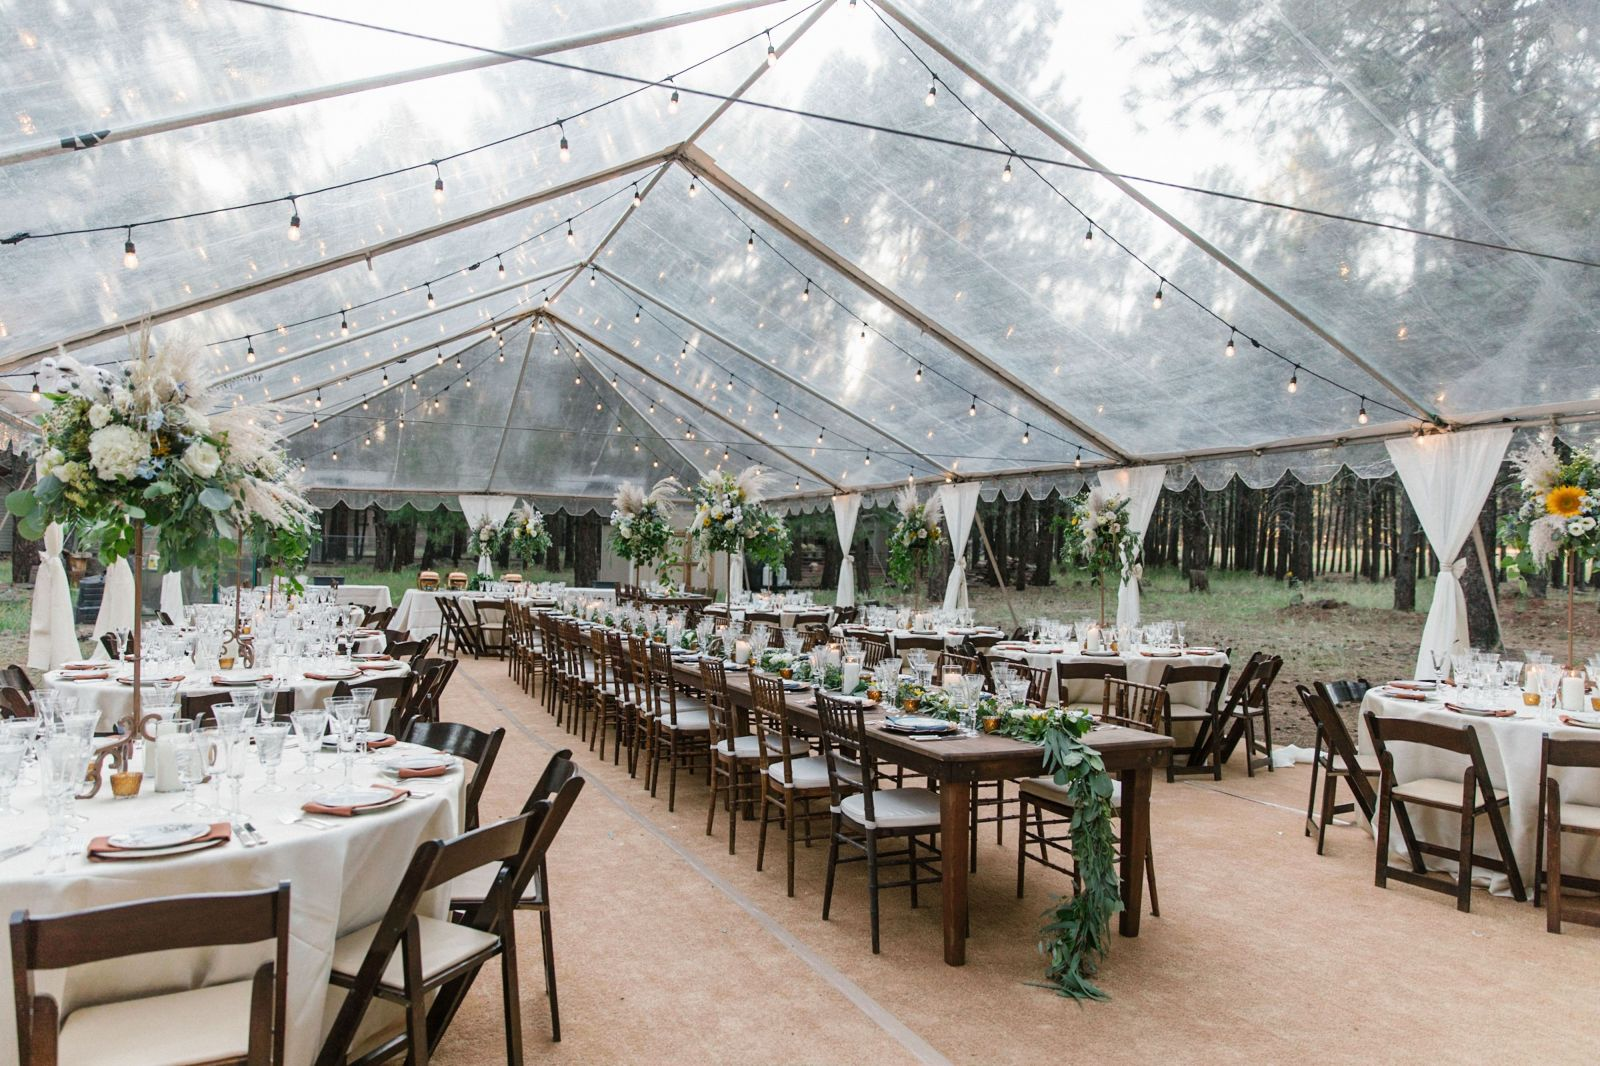 Event planners in Arizona